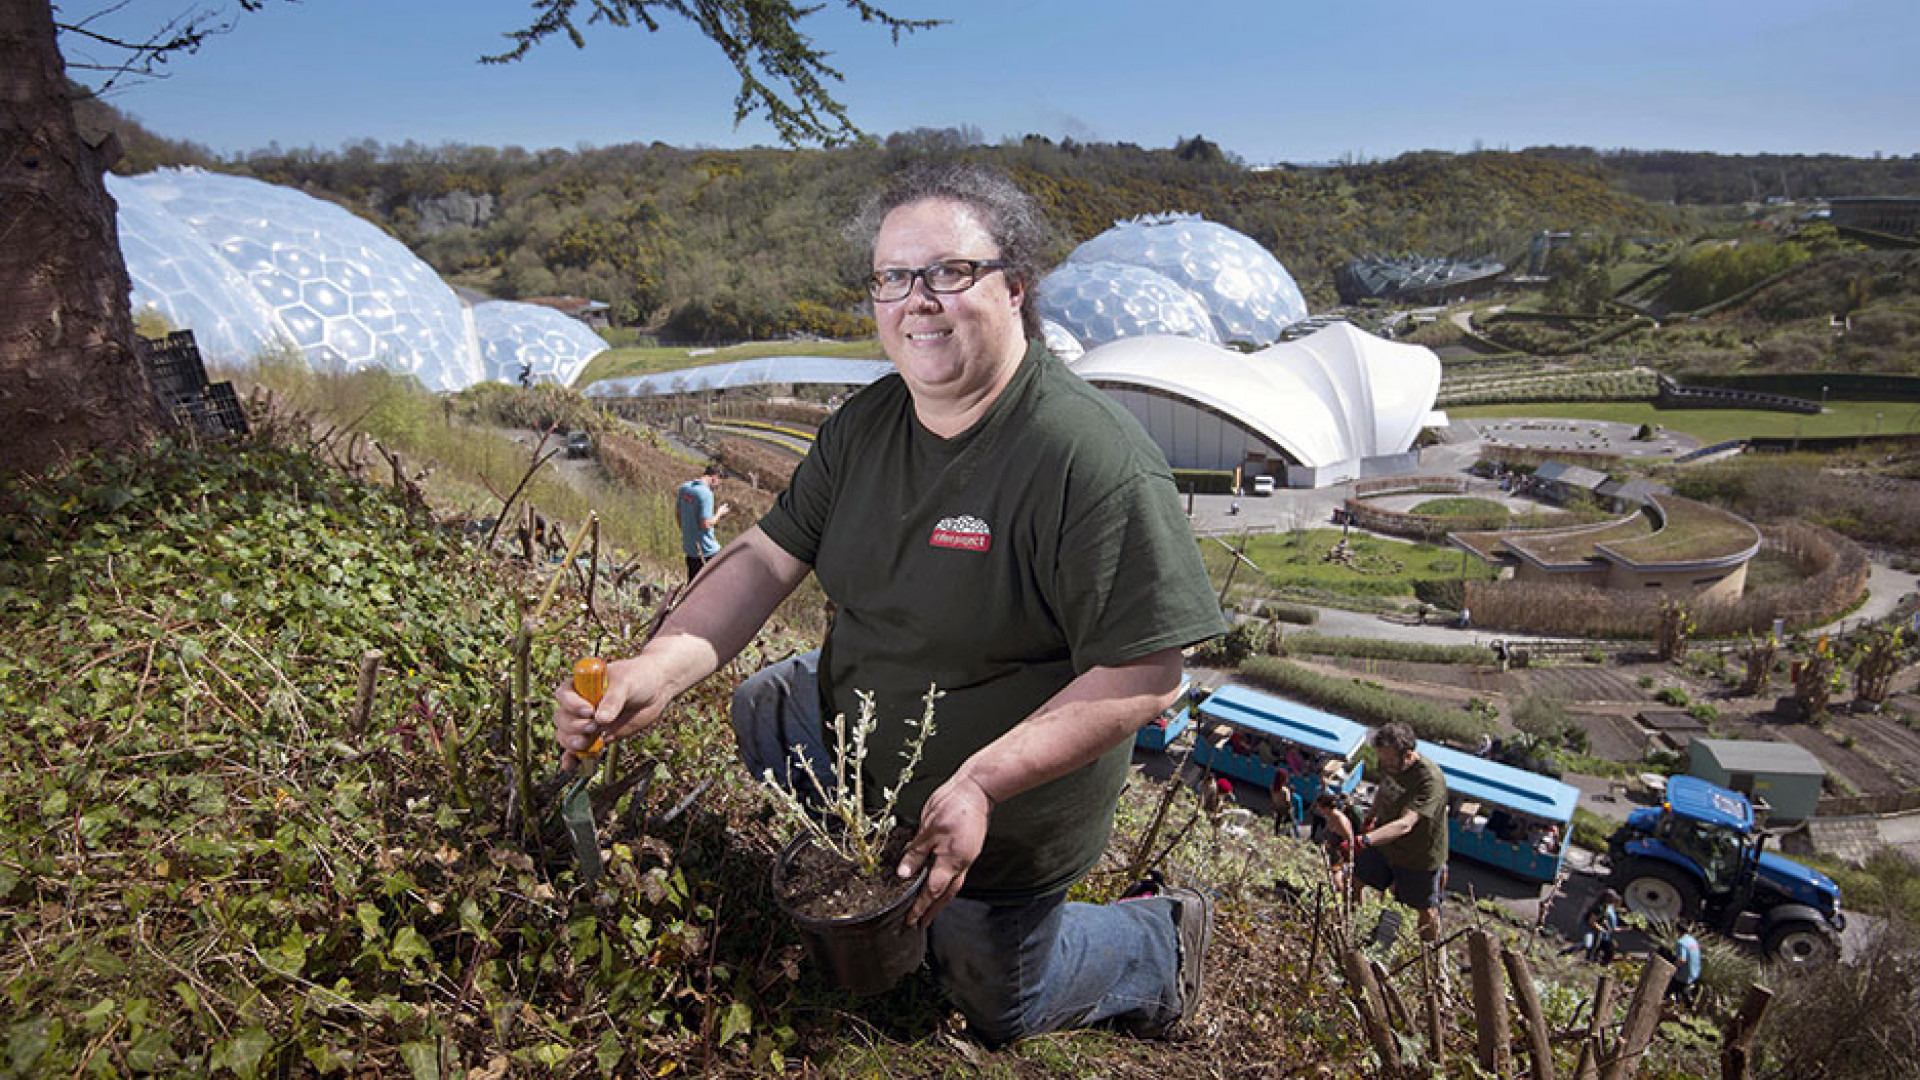 Julie Kendall, lead outdoor horticulturalist at the Eden Project